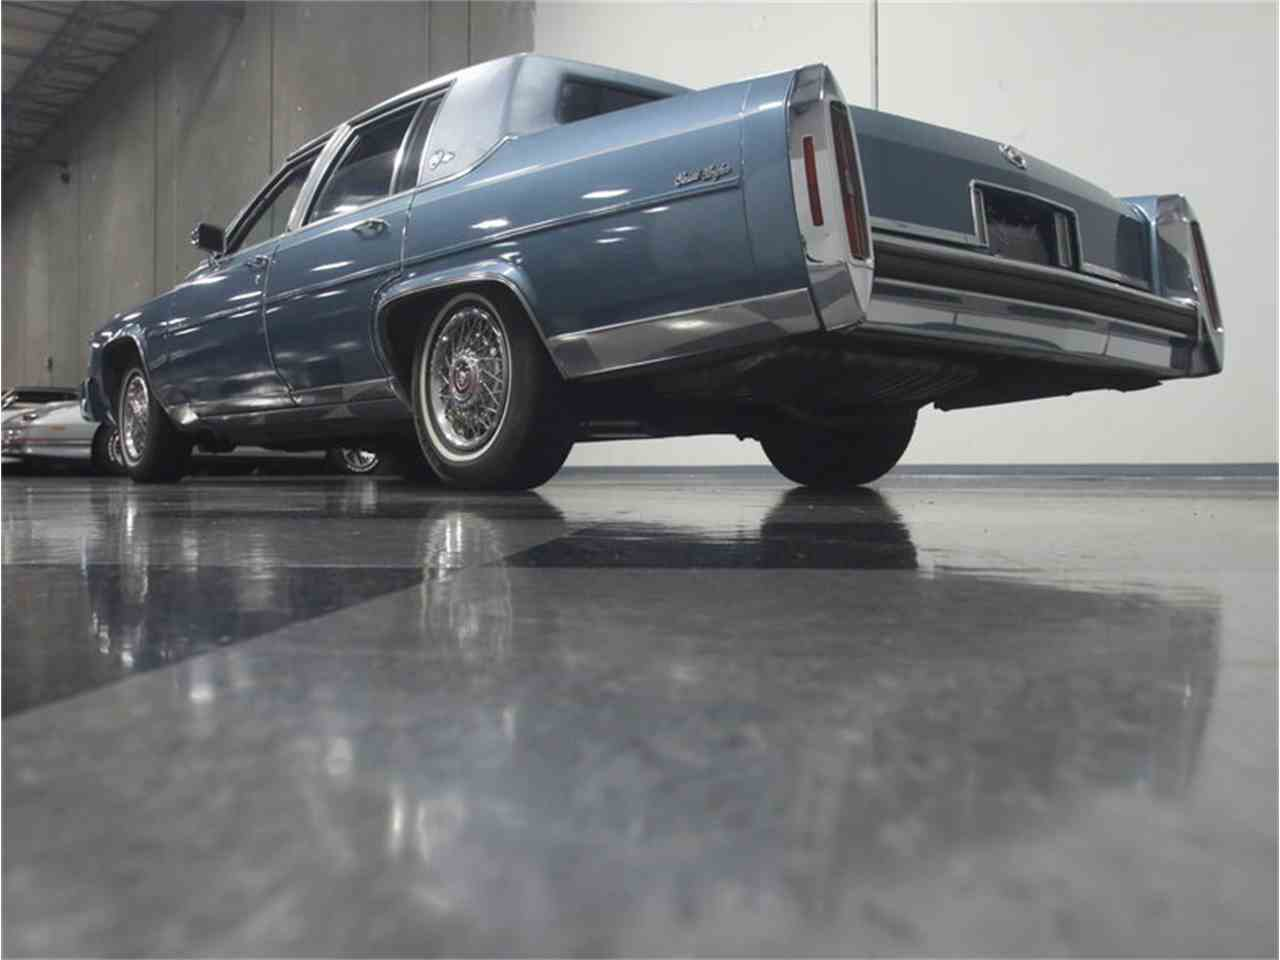 Large Picture of '86 Cadillac Fleetwood Brougham located in Georgia - $8,995.00 - LHHW